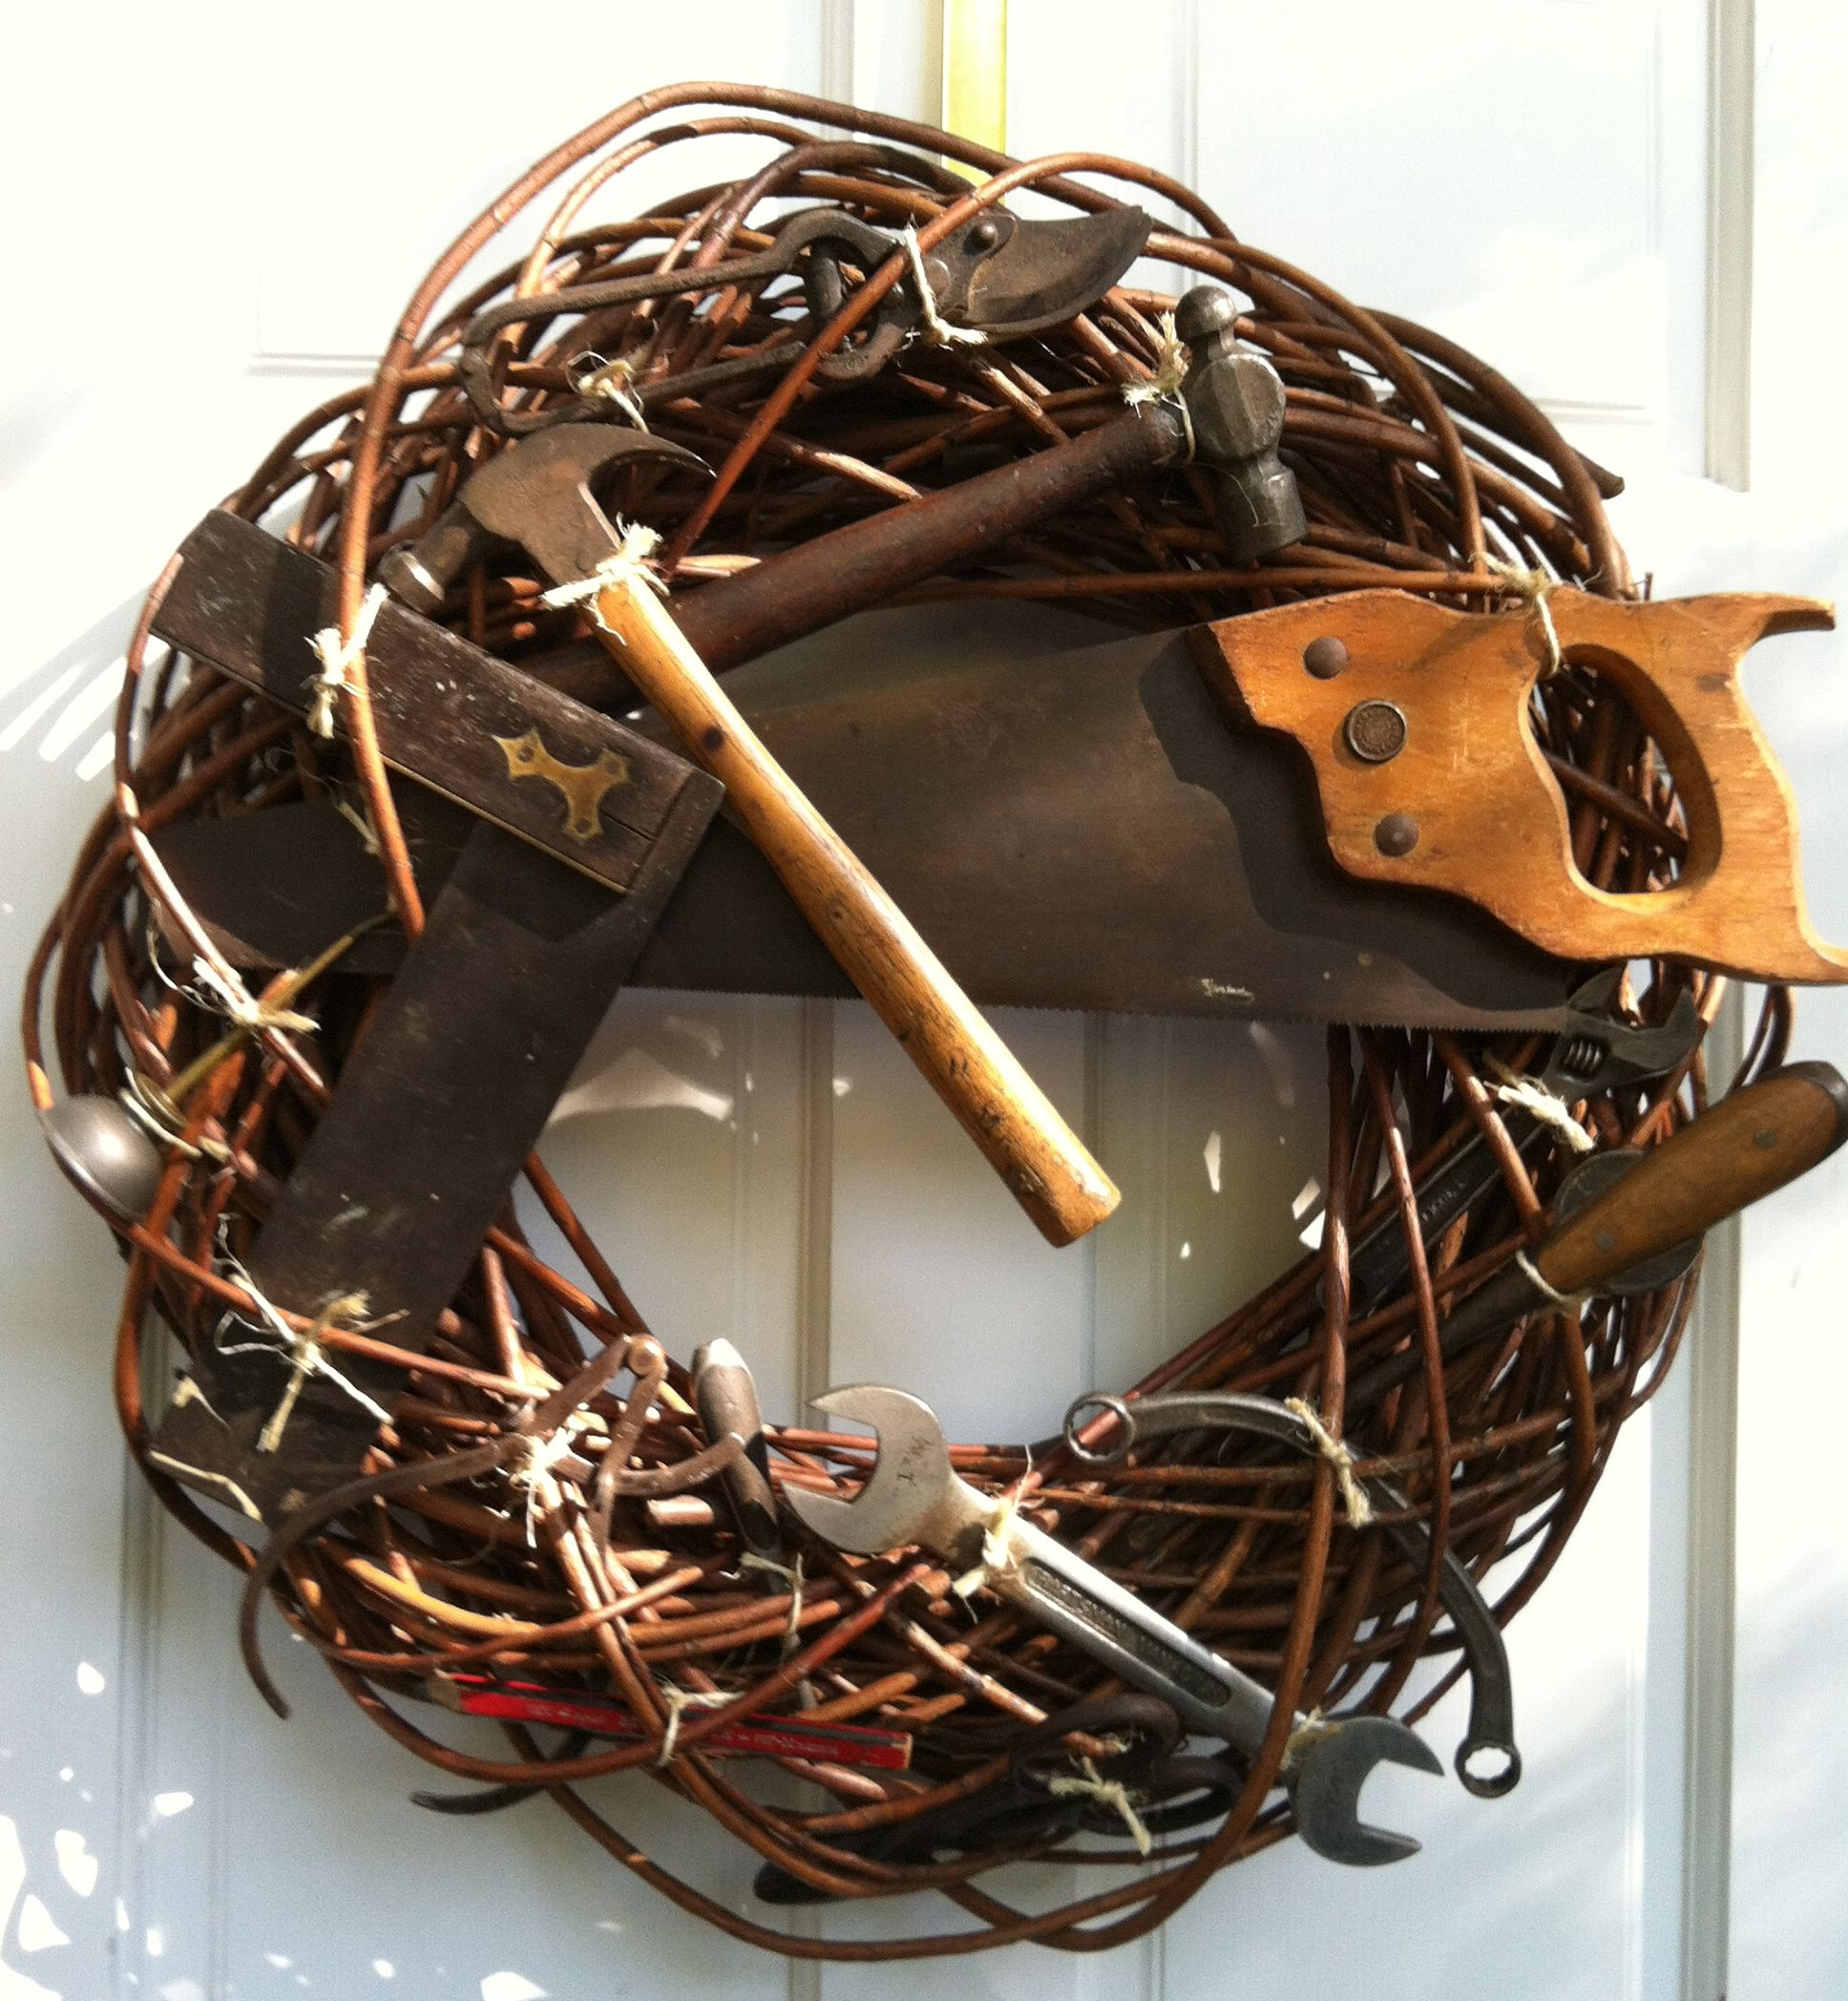 Grapevine wreath with old tools for my dad's door. Tools are tied on with binder's twine. Added magnets for leaving notes on the saw!